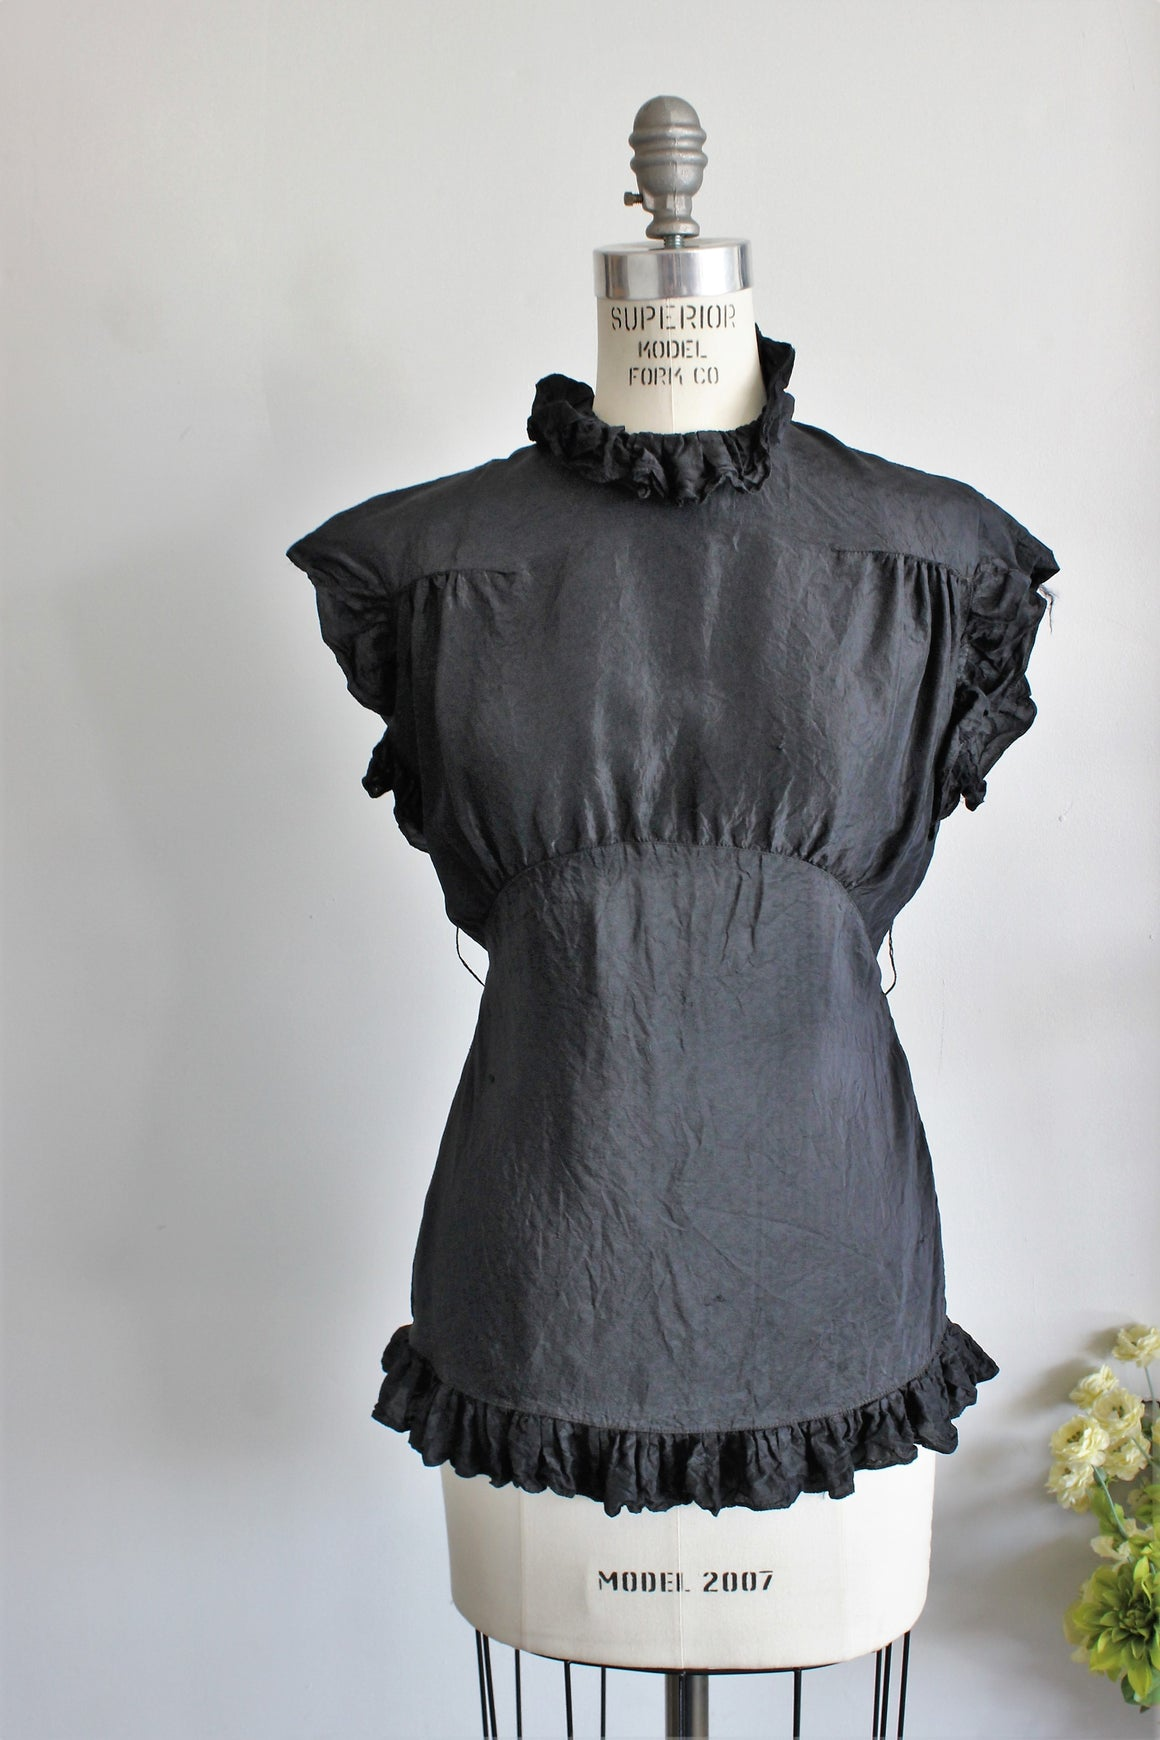 Vintage 1930s 1940s Black Rayon Blouse with Keyhole Back